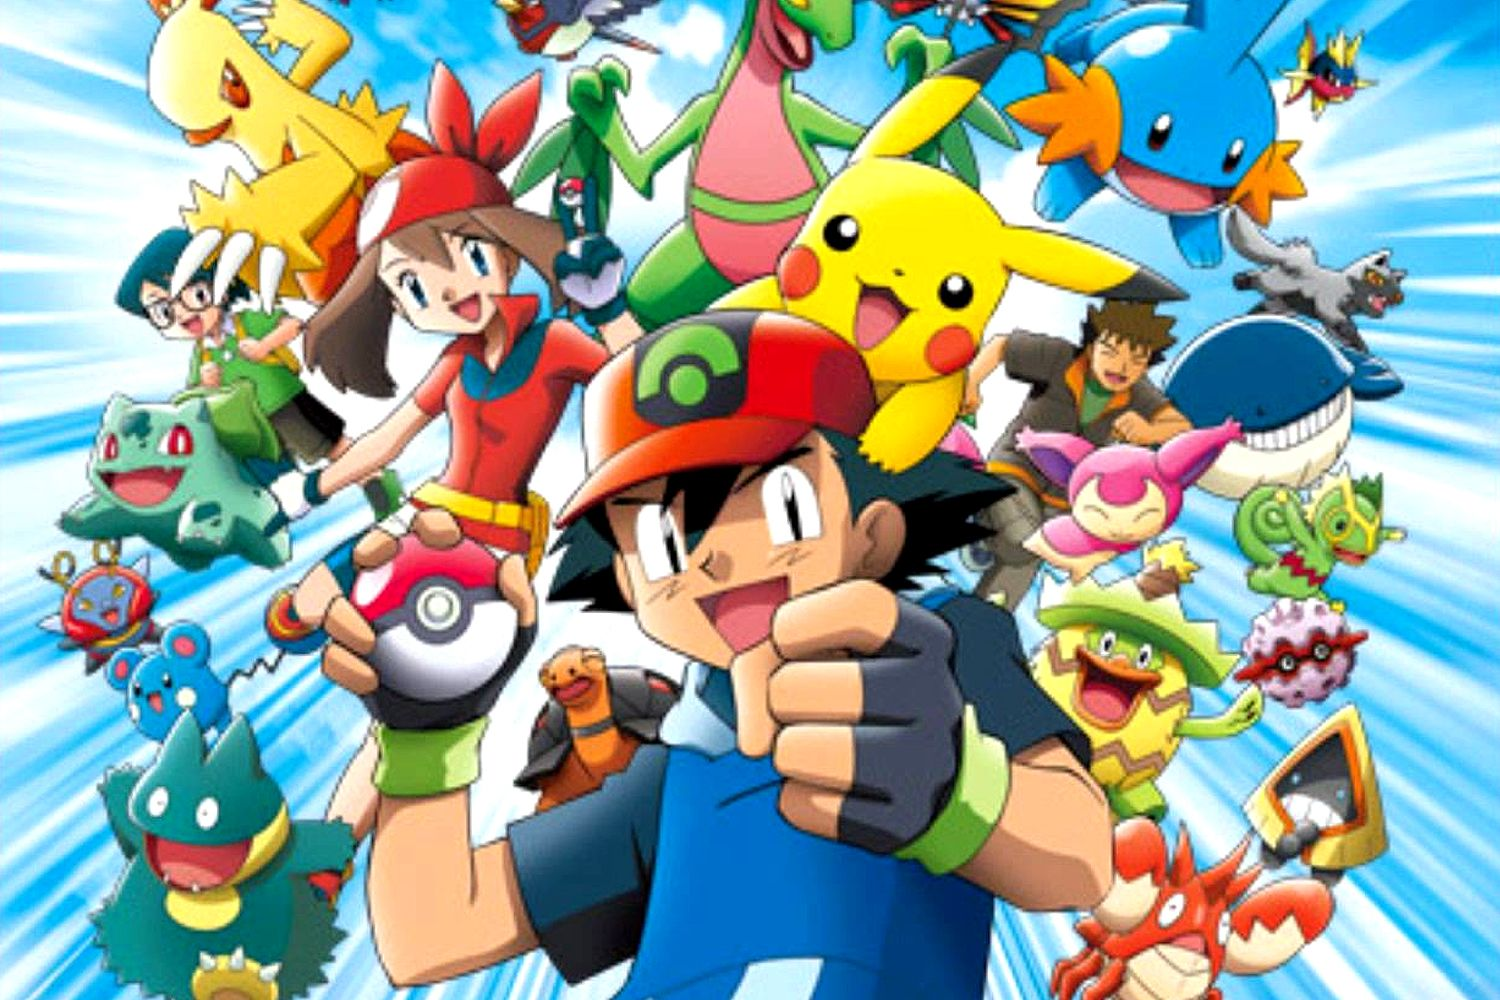 Find out which pokemon anime season is best with this top